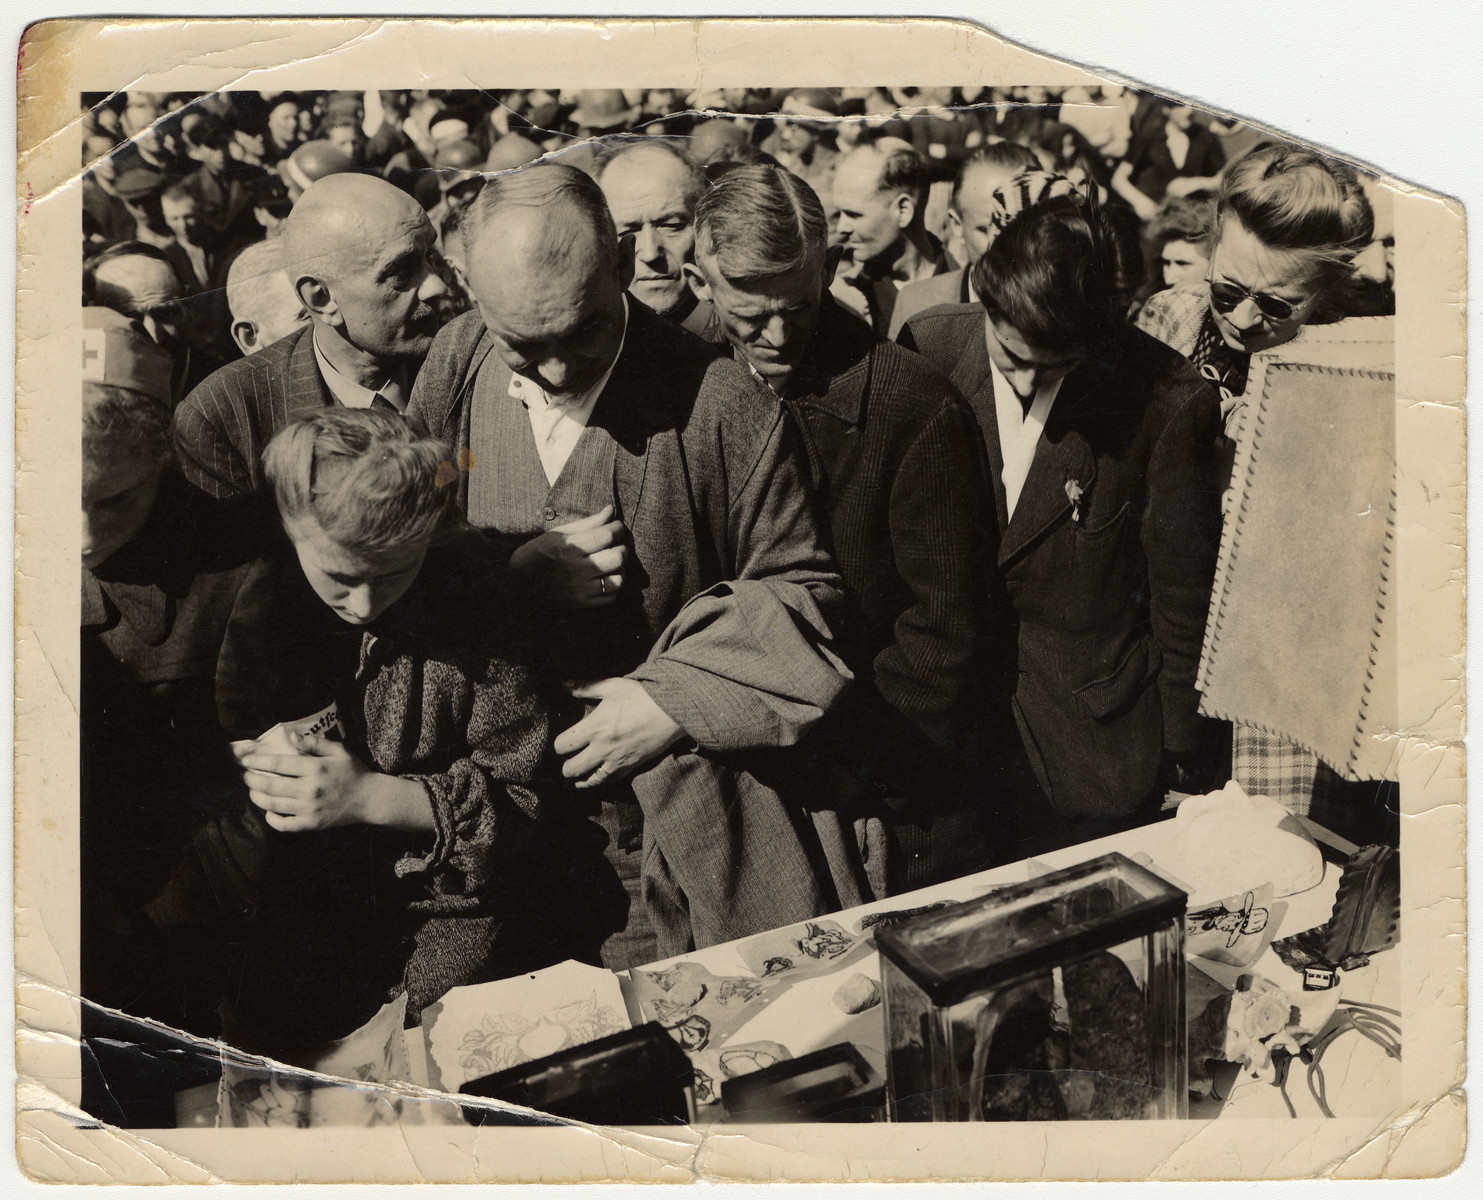 """German civilians are forced to look at a display in the Buchenwald concentration camp of tattoos and a lampshade allegedly made from human remains.  The original caption reads: """"...German civilians going through the concentration camp.  On the table are the tattoos.  Whenever anybody had a tattoo on him, they'd cut the skin out and treat it and then make lamp shades and things like that.  You can see one lamp shade.  The glass jar on the table has lungs in it.  They also did a lot of experimenting on these slave laborers by injecting serums and diseases into them."""""""